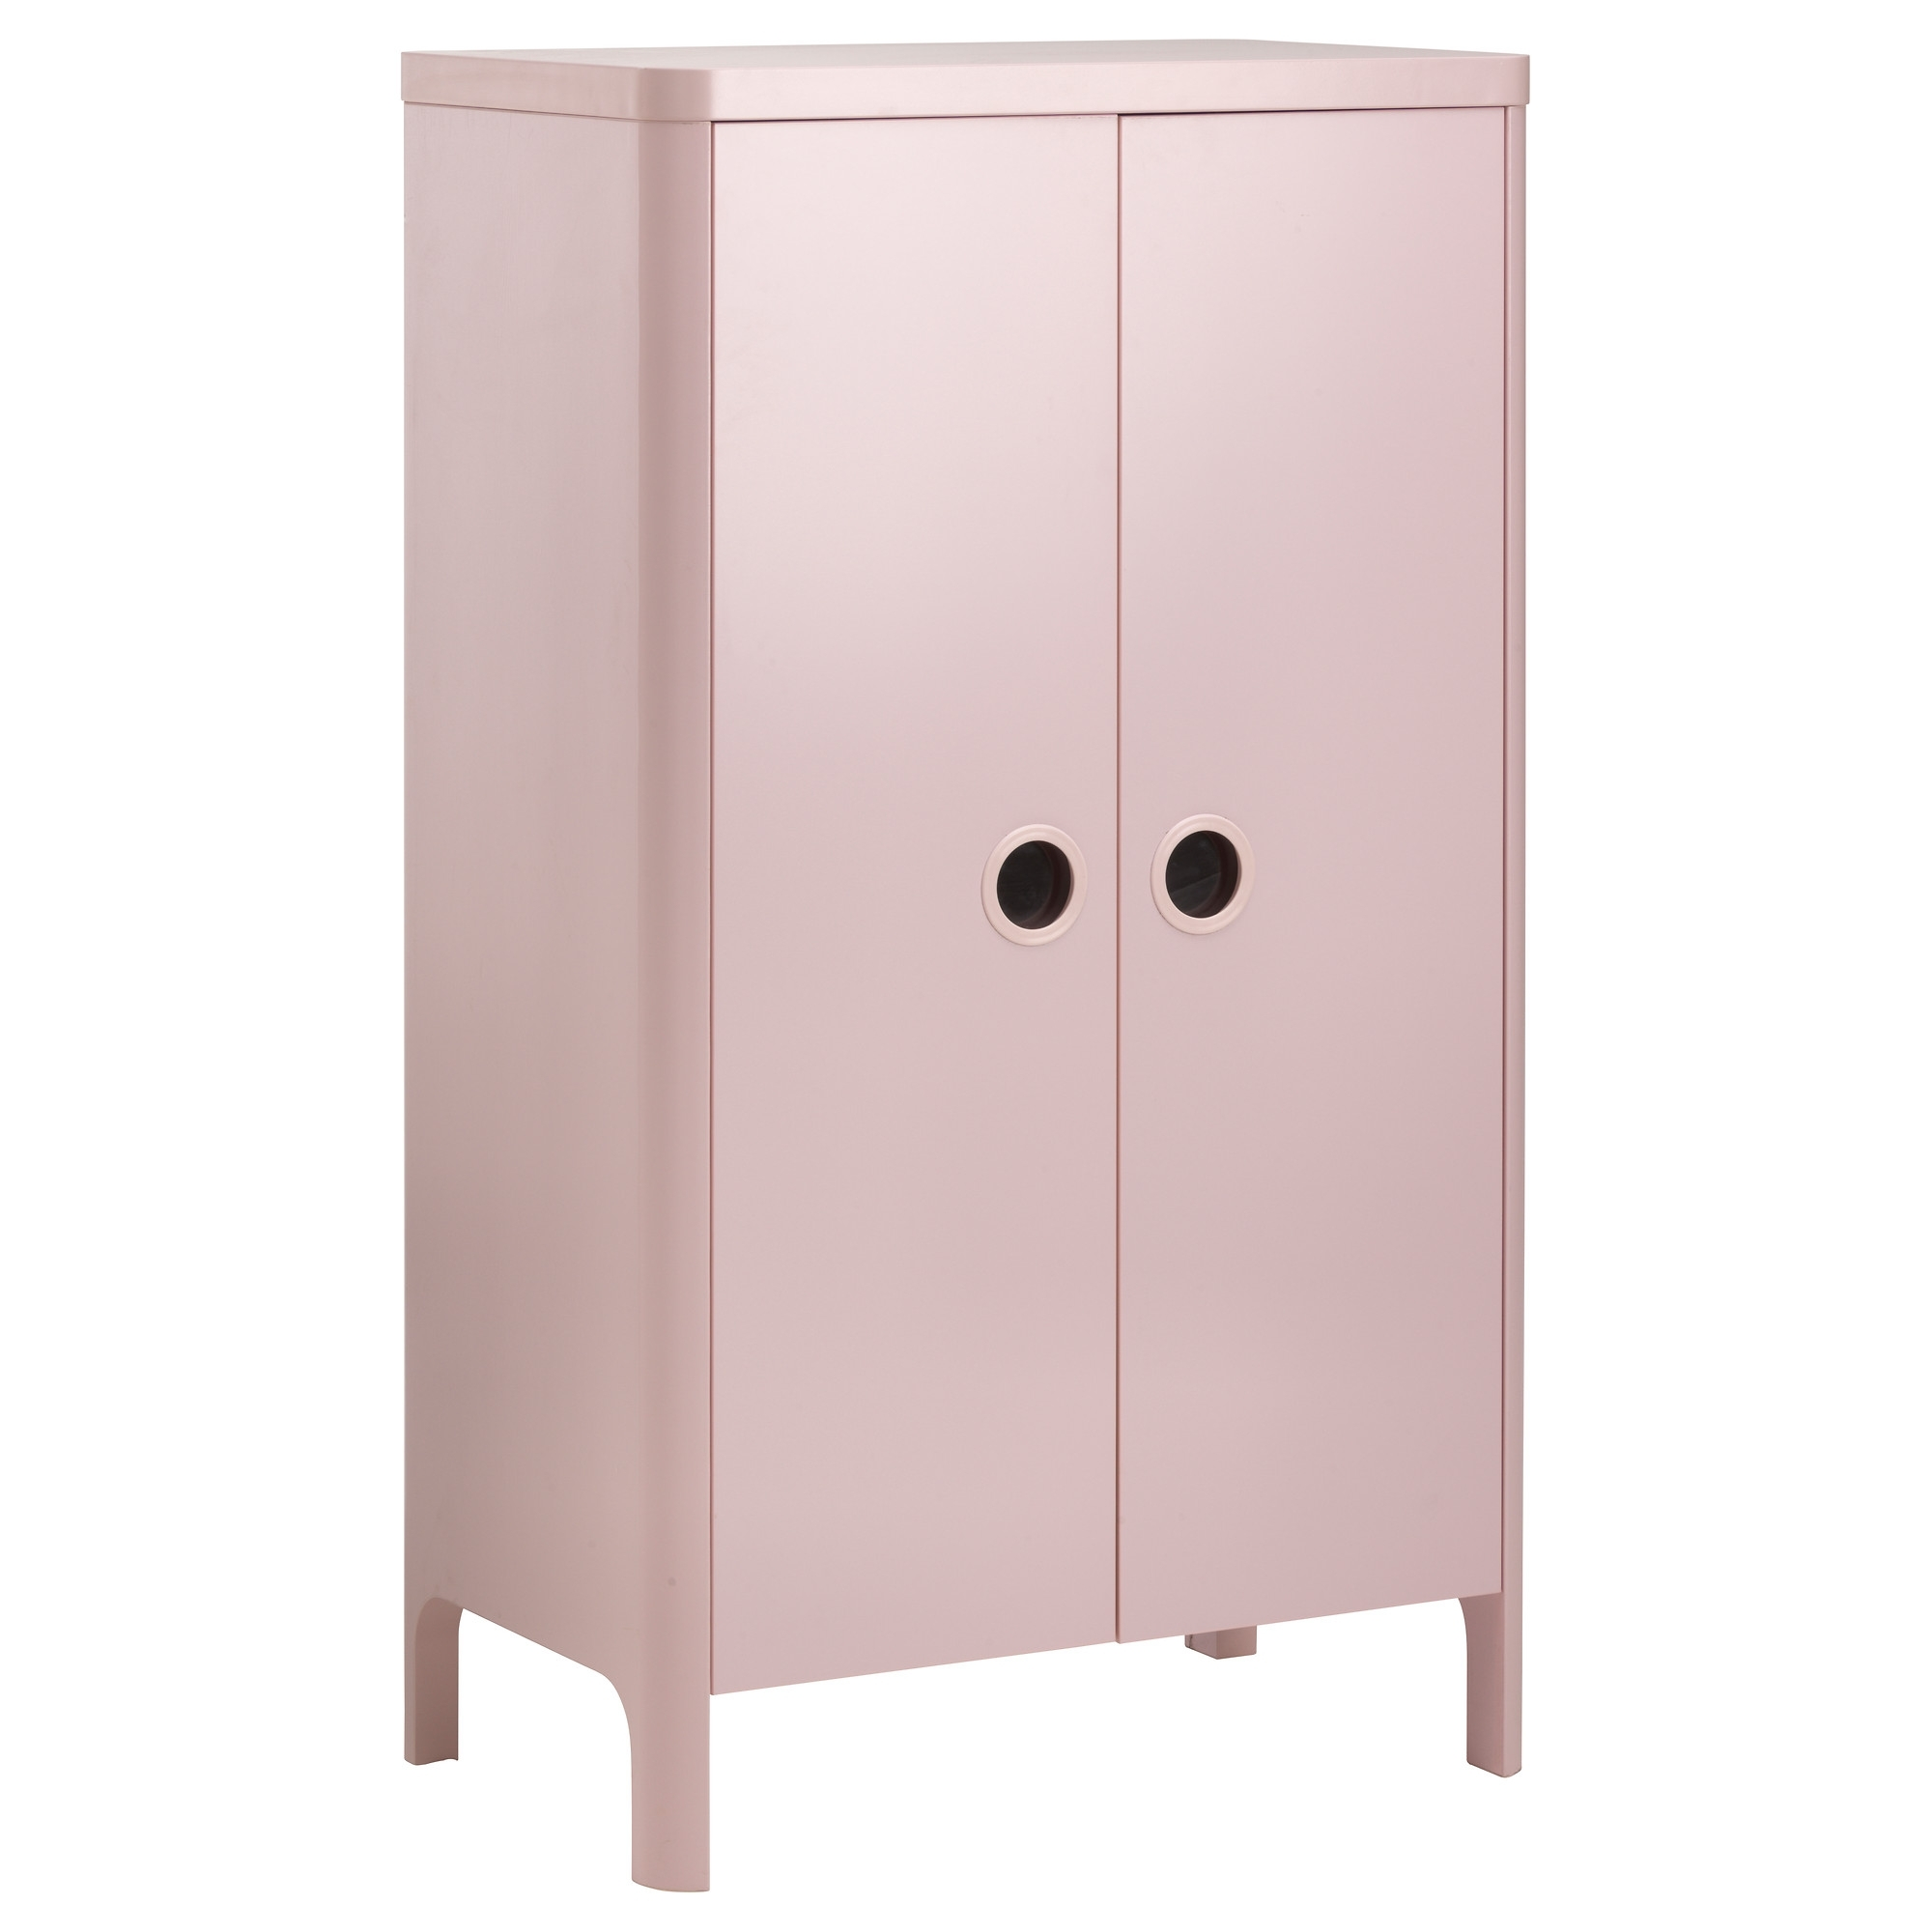 Children's Wardrobes – Nursery Wardrobes – Ikea With Recent Childrens Tallboy Wardrobes (View 3 of 15)